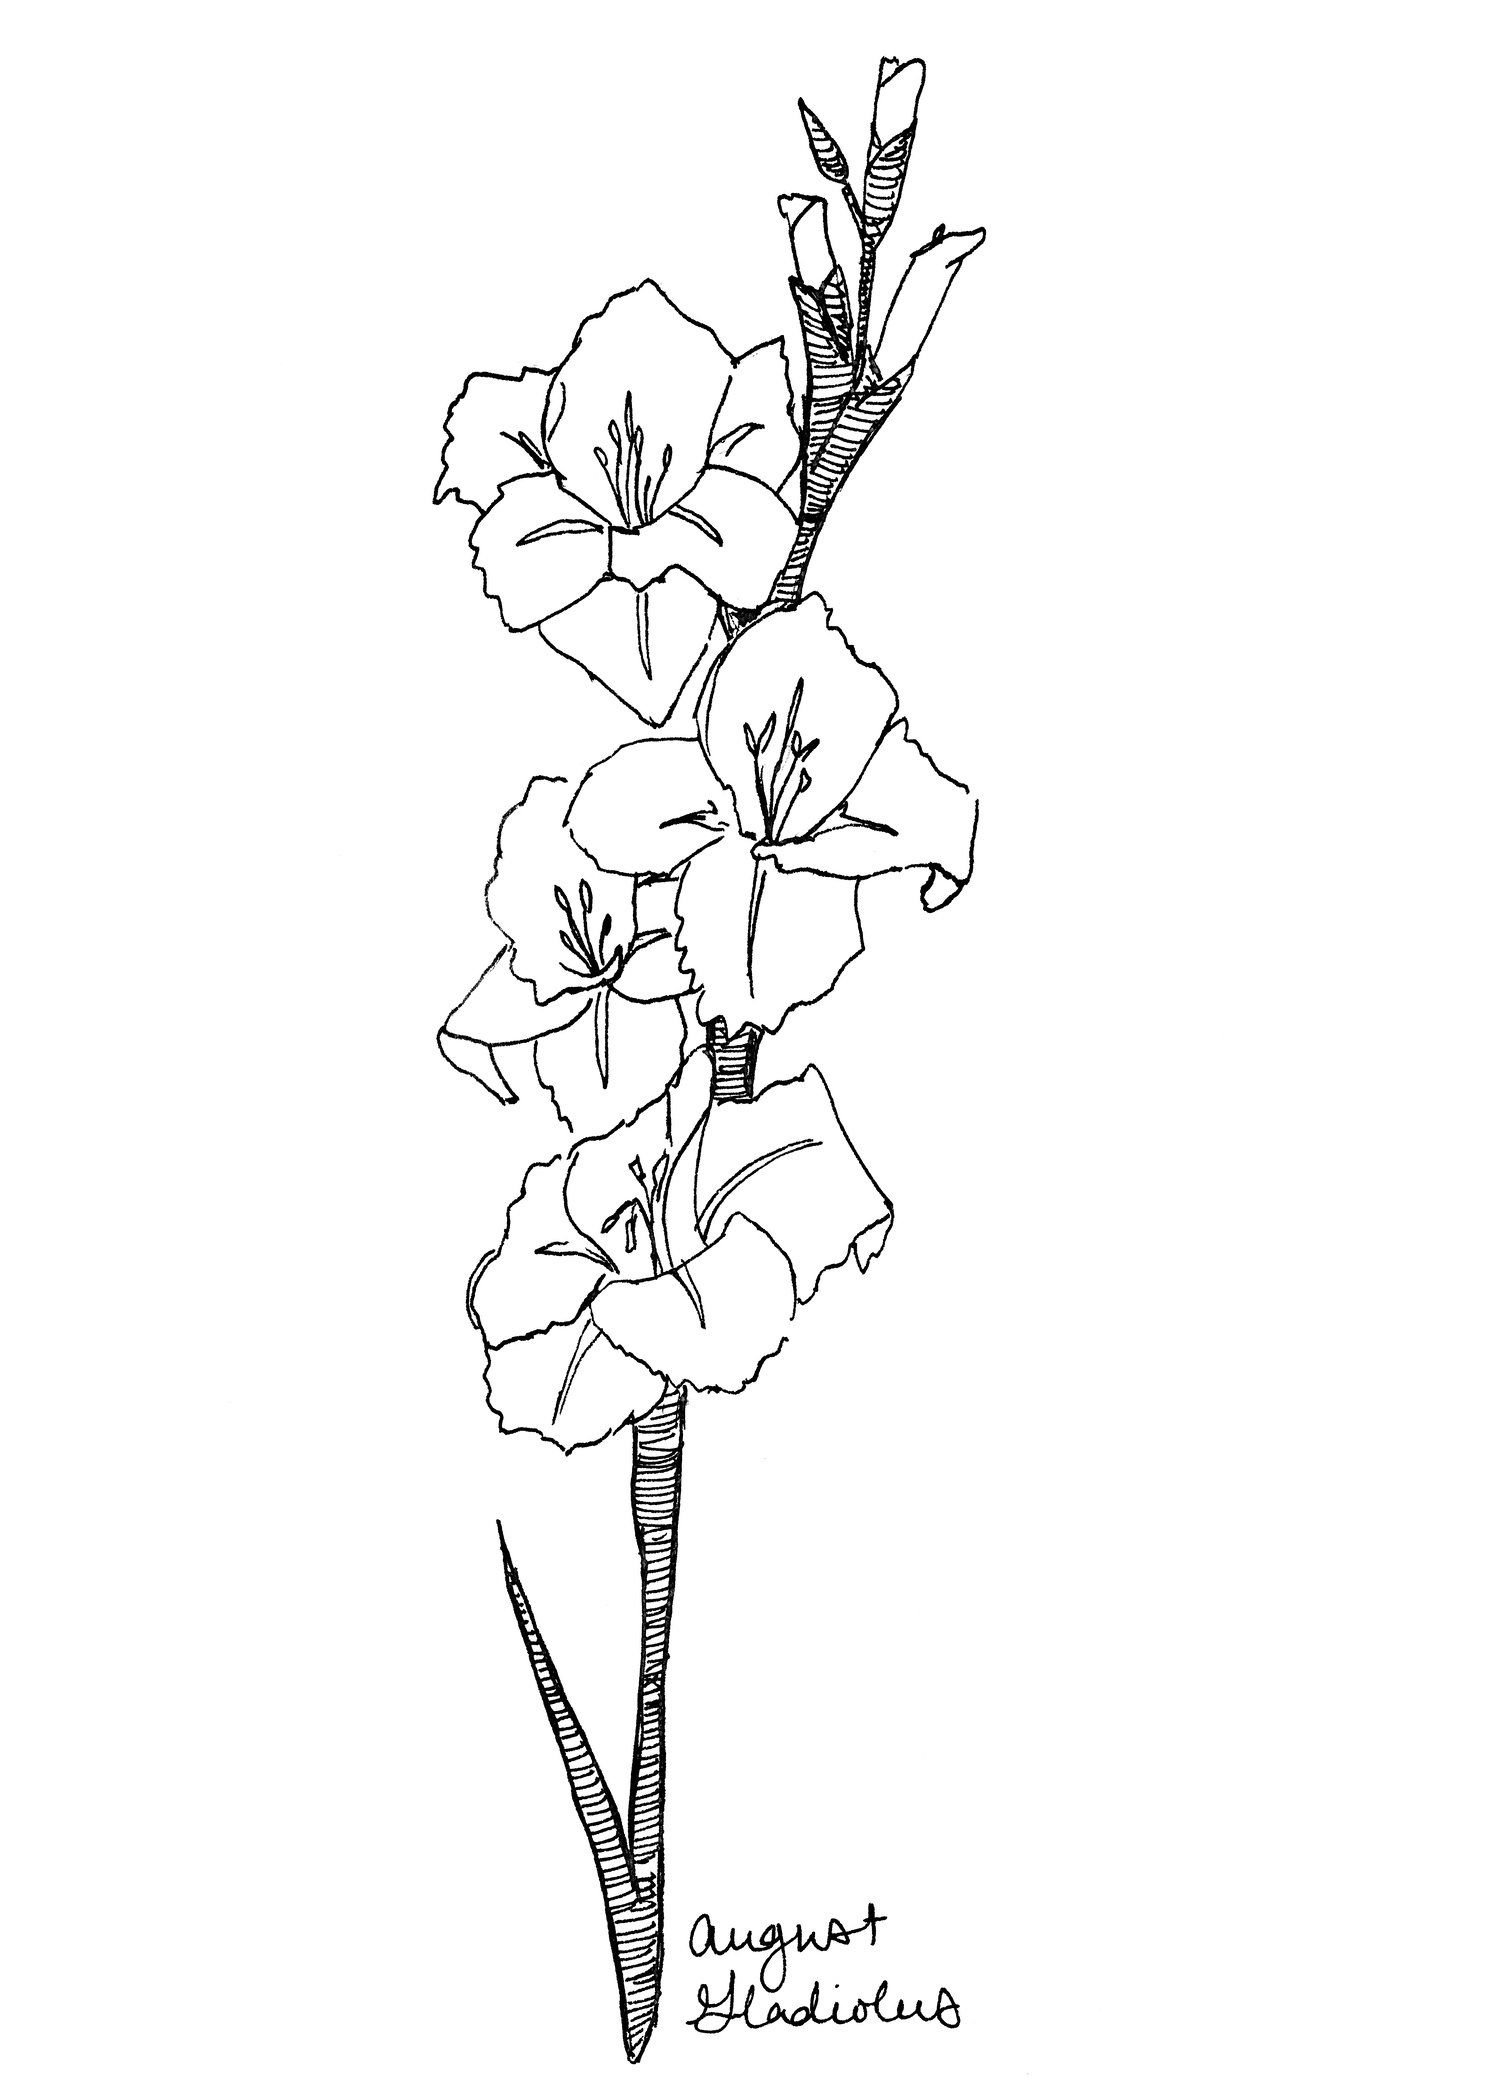 Gladiolus Purple Flower Drawing Simple Drawing Ideas White Background In 2020 Flower Drawing Flower Art Drawing Cute Flower Drawing